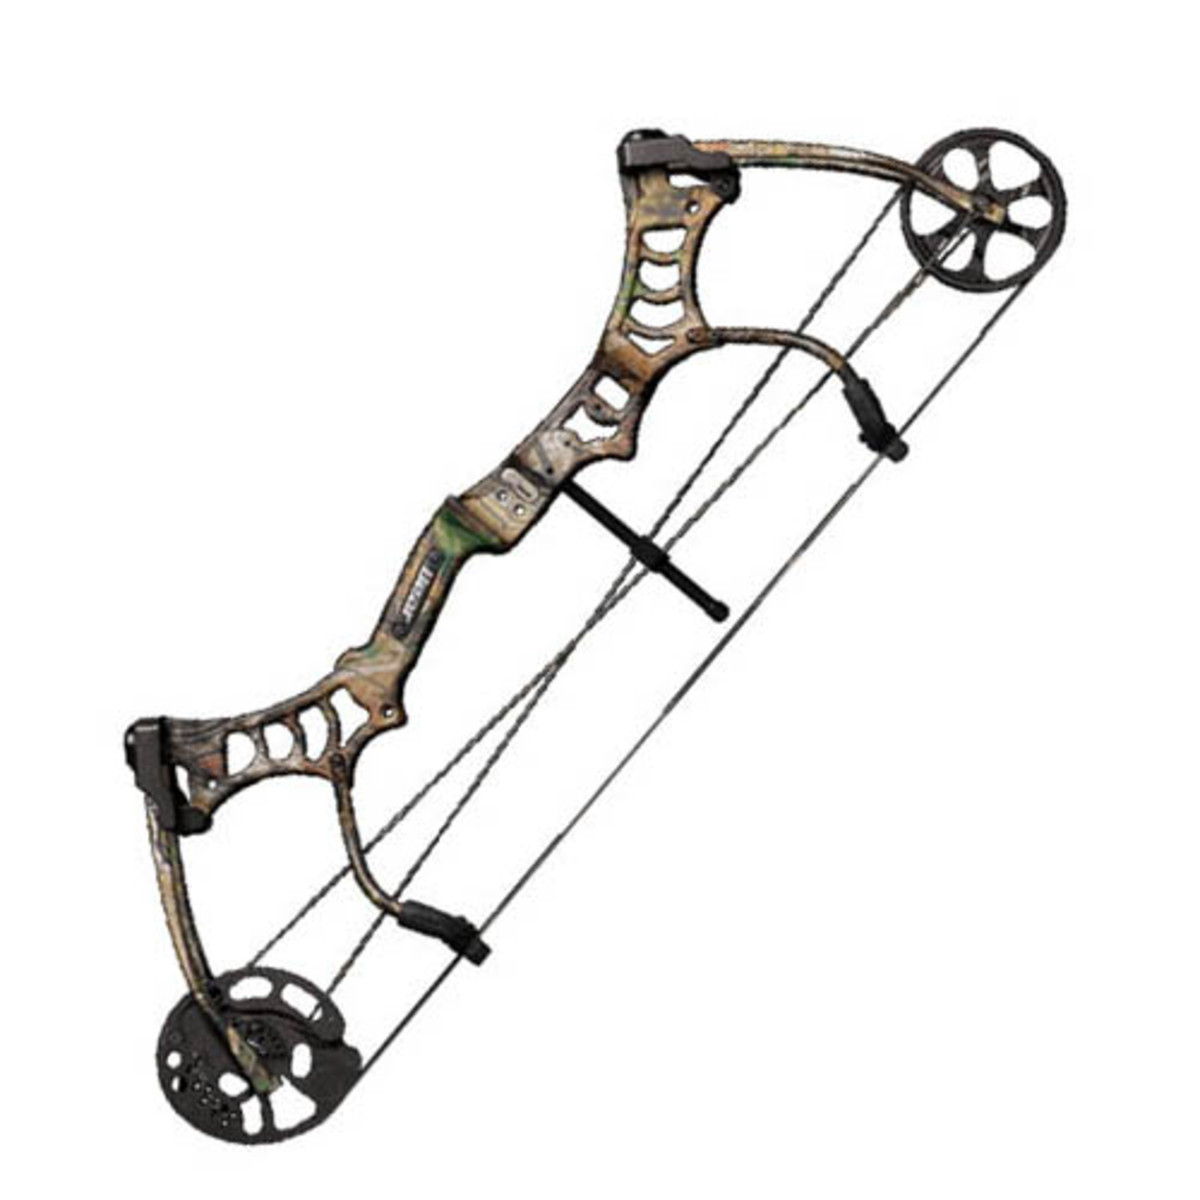 "Speed: 318 fps Weight: 4 lbs Brace Height: 7"" Axle to Axle: 30.5"" Draw Weight: 50 lbs/60 lbs/70 lbs Draw Length: 26"" - 31"" Let-Off: 80% Color: Realtree Camo"